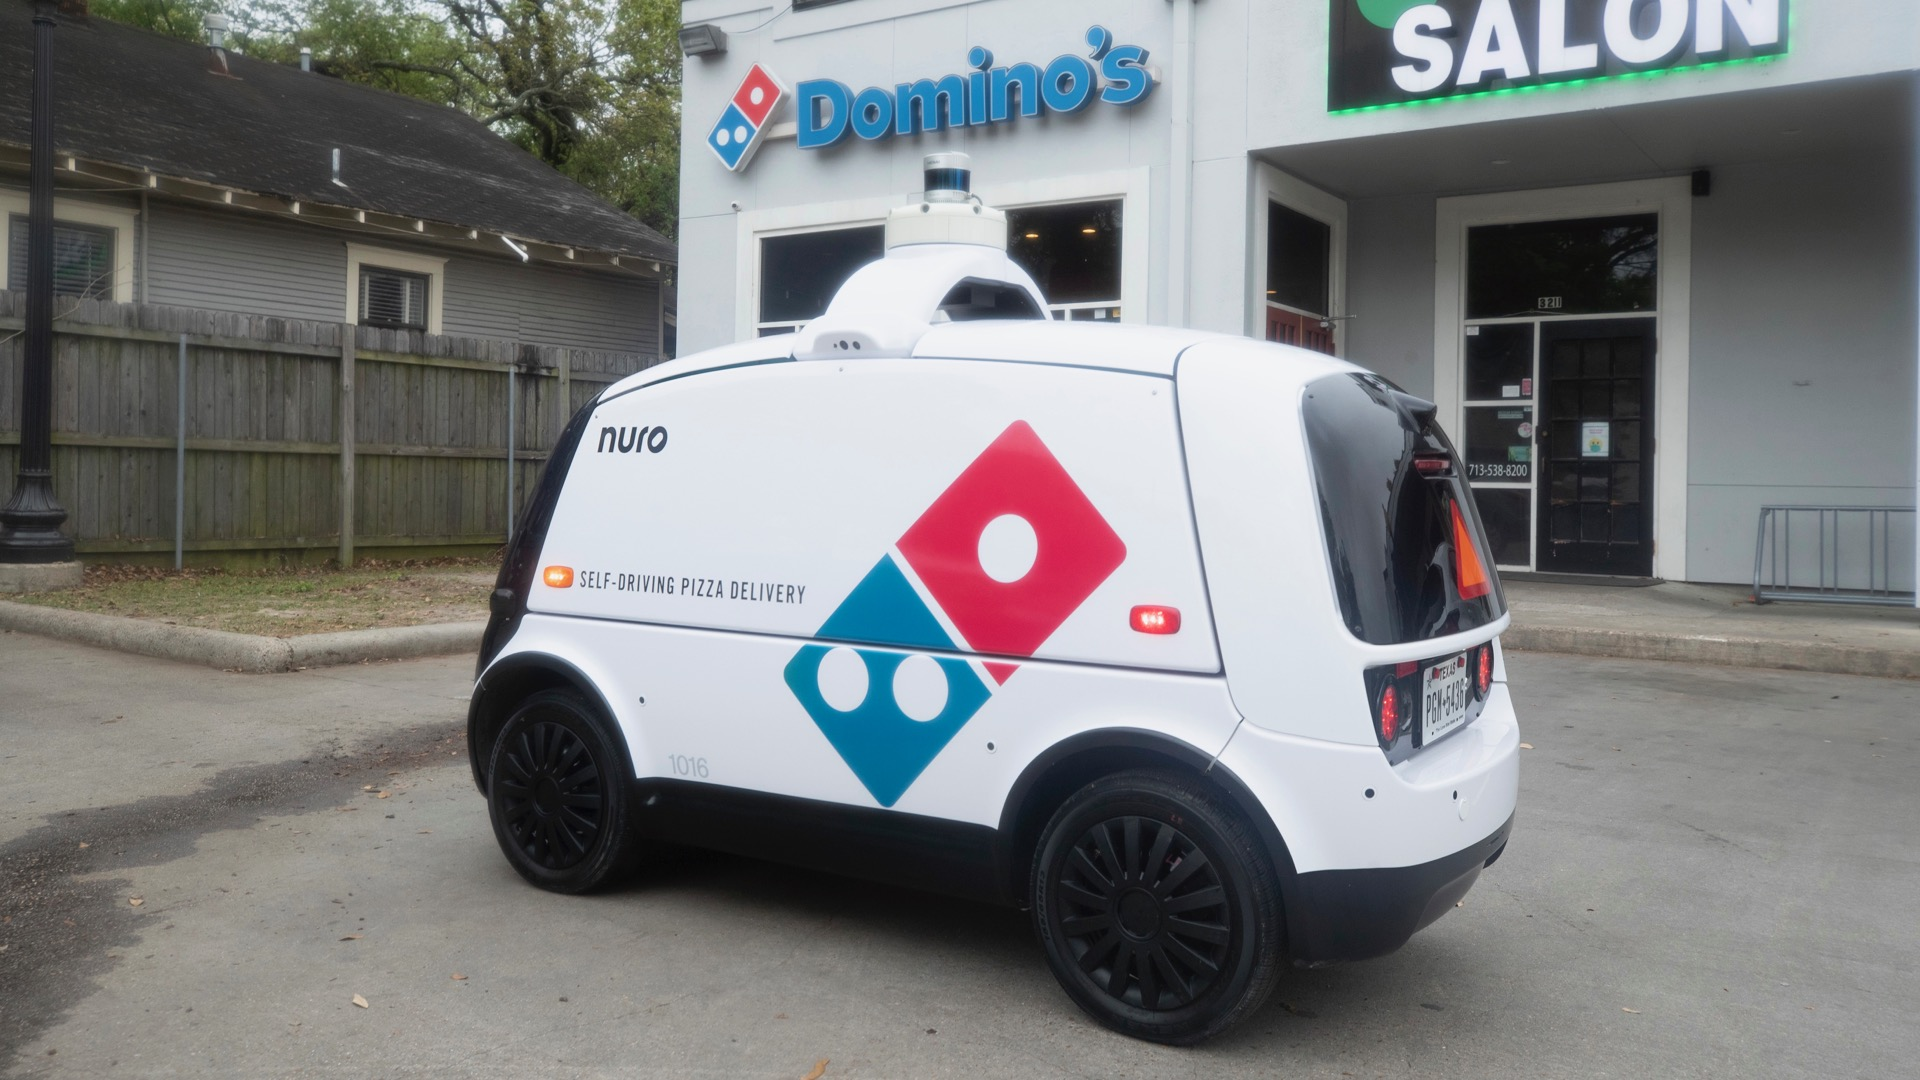 Domino's launches autonomous pizza delivery with self-driving robot car